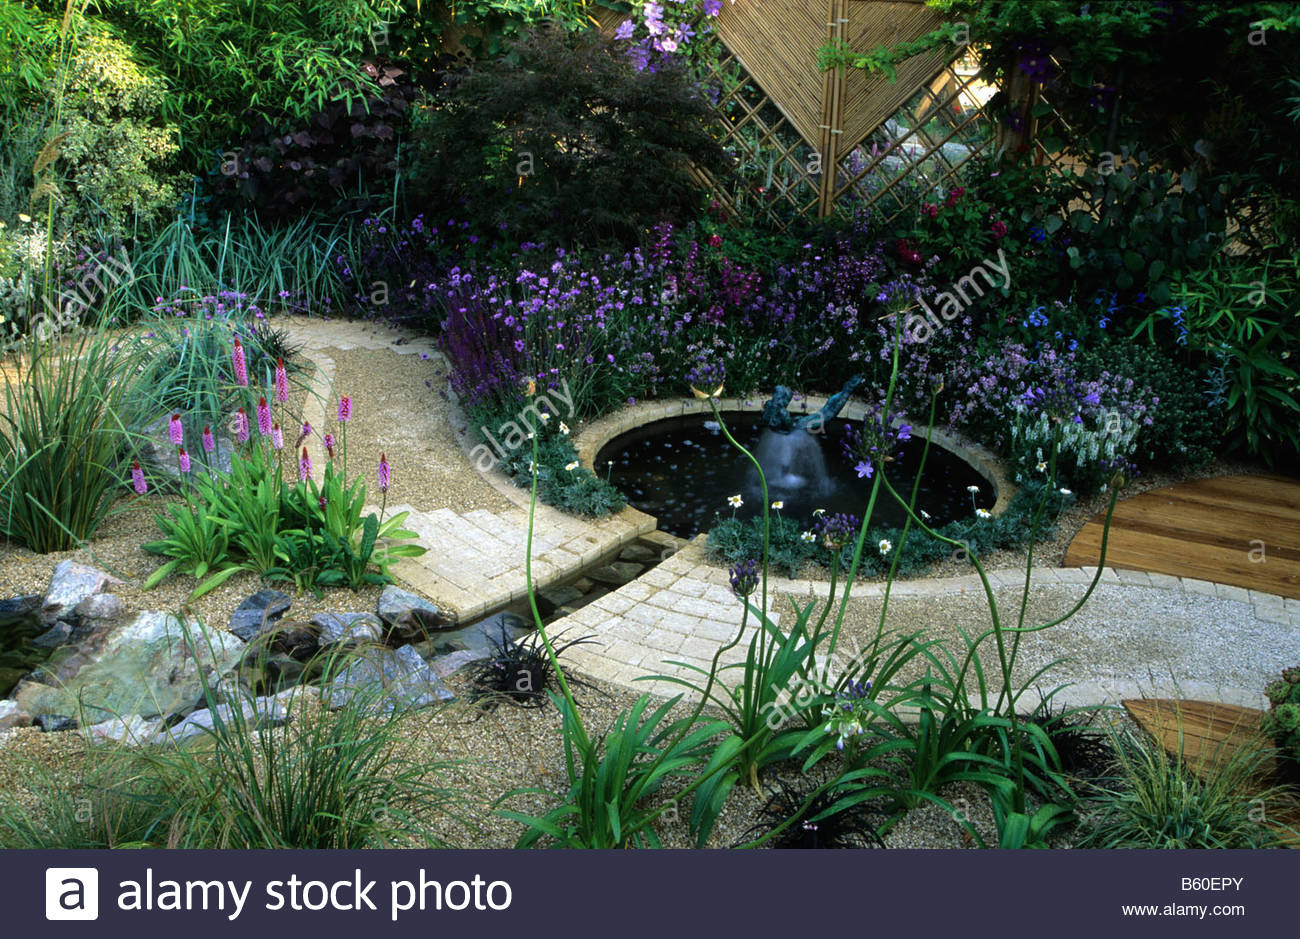 Feng shui garden london design pamela woods cool colour for Feng shui garden designs